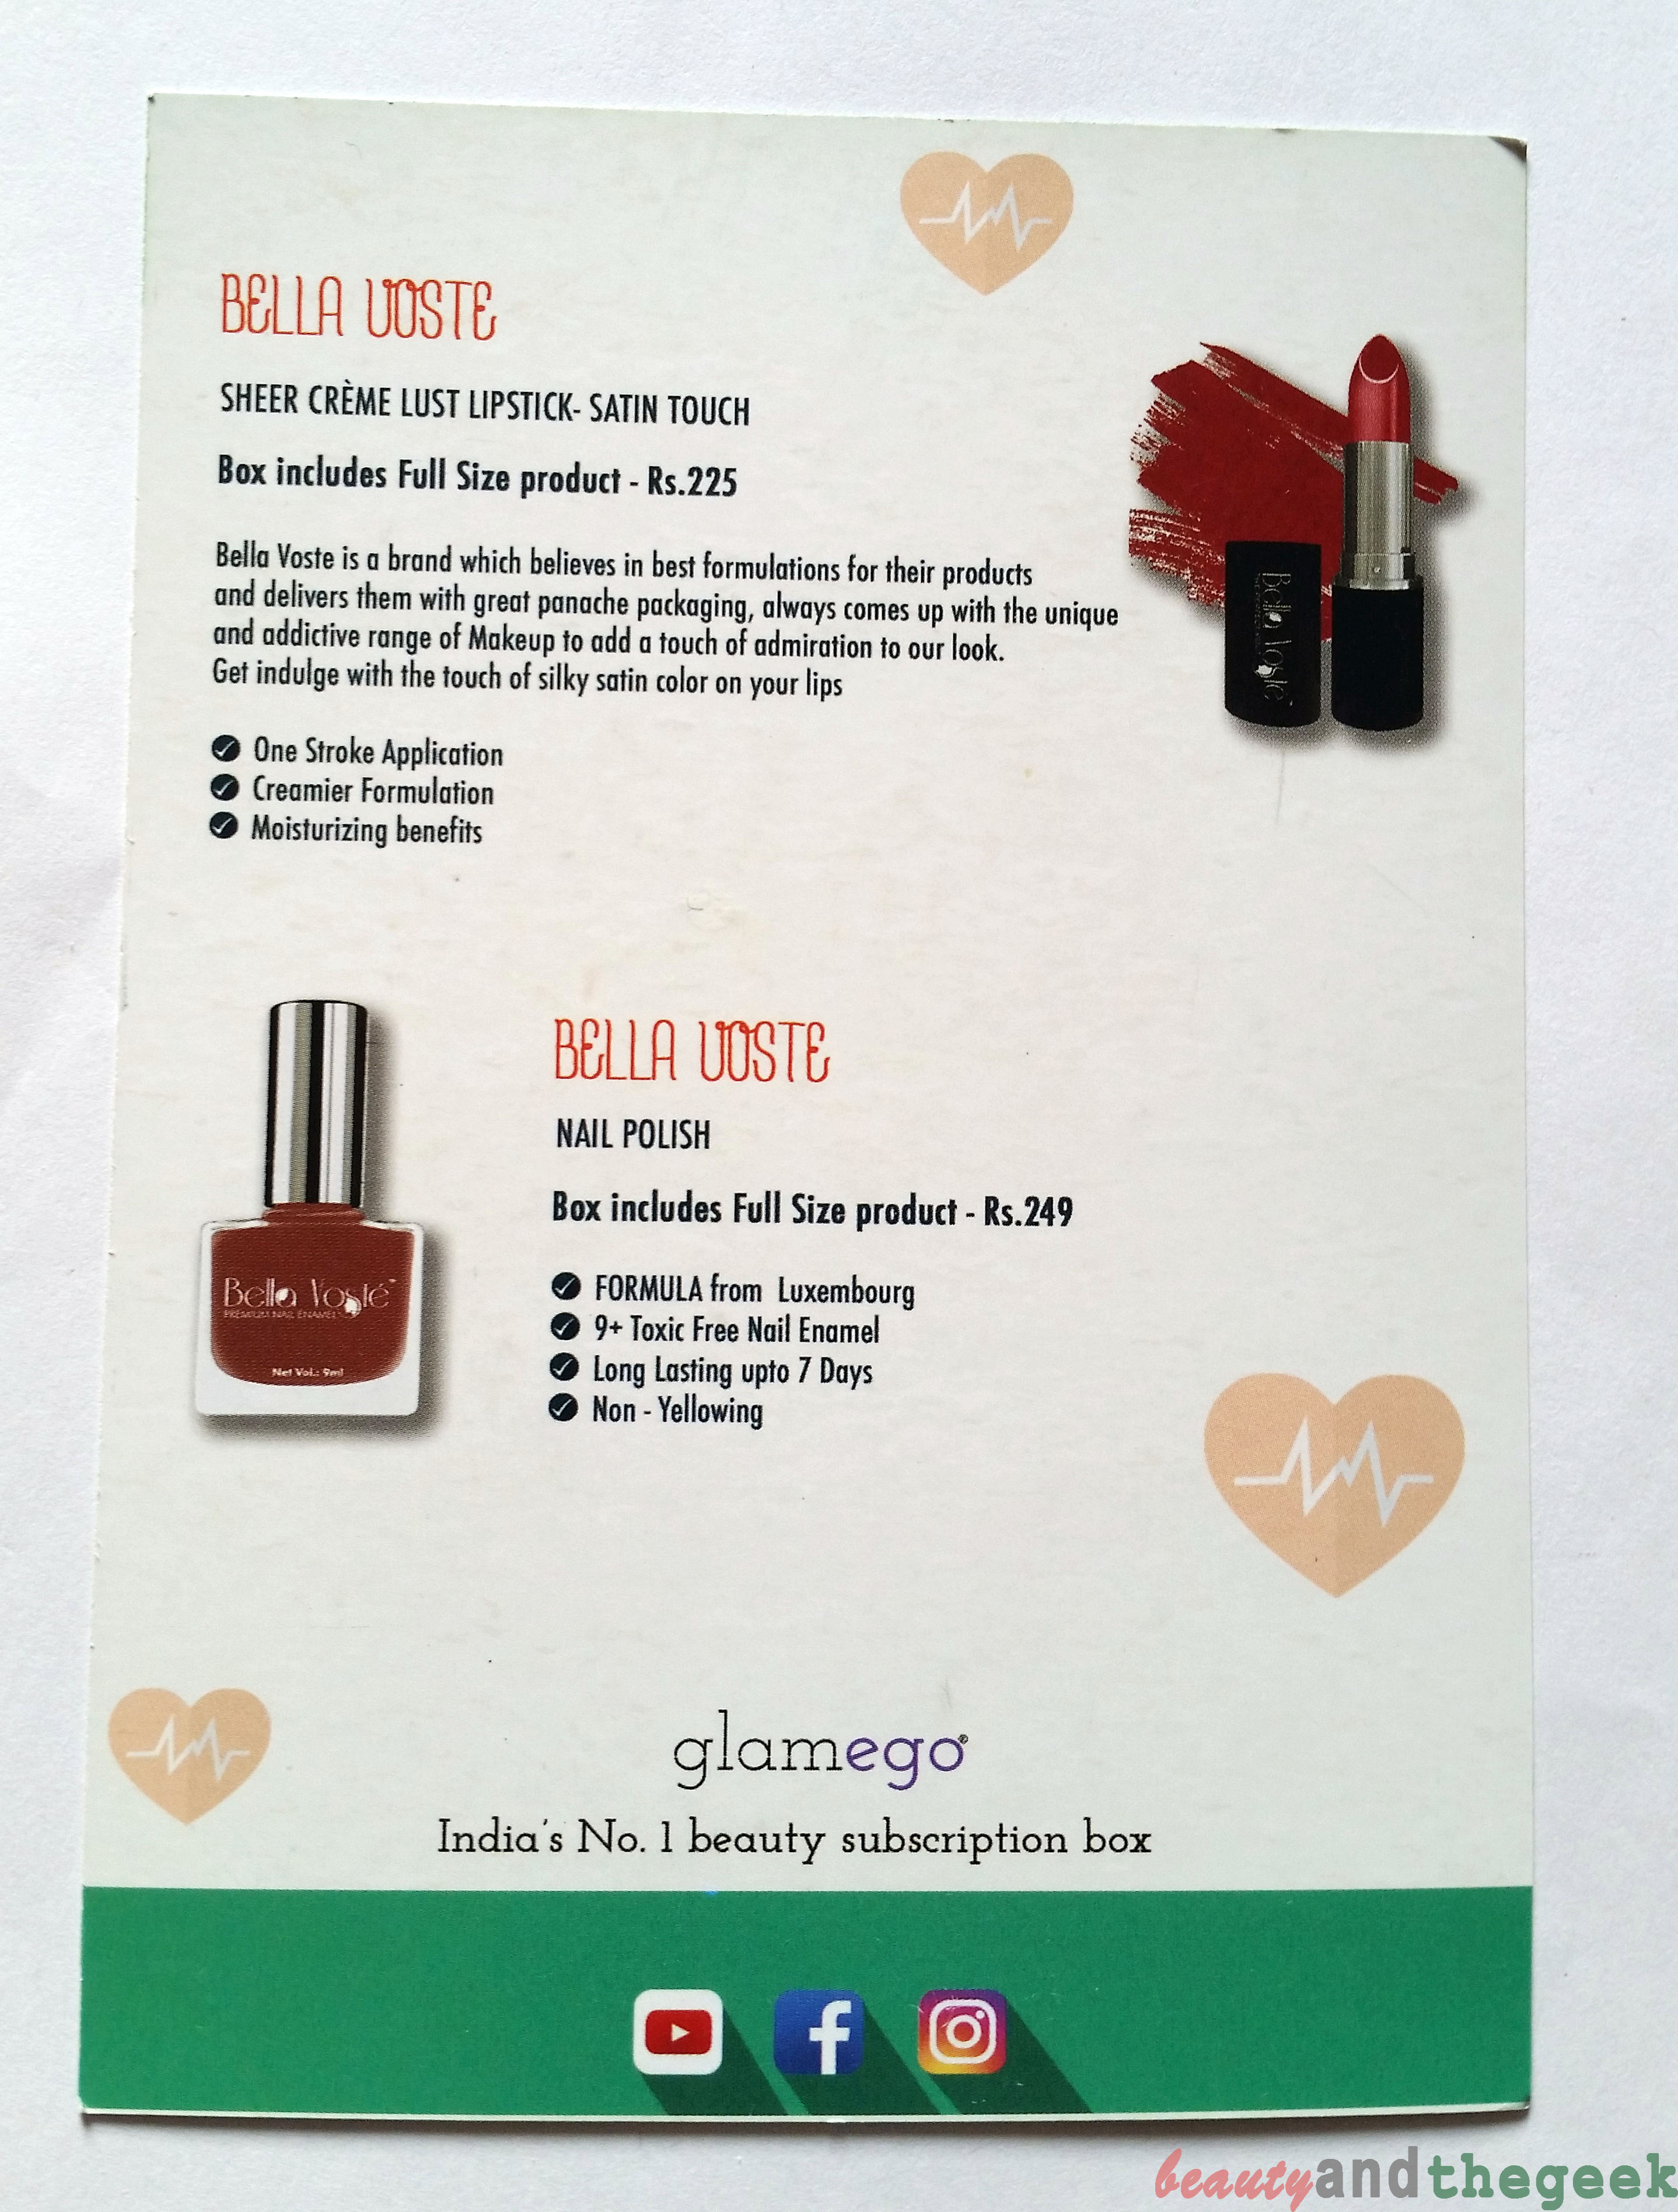 Glam Ego Monthly subscription Box info card